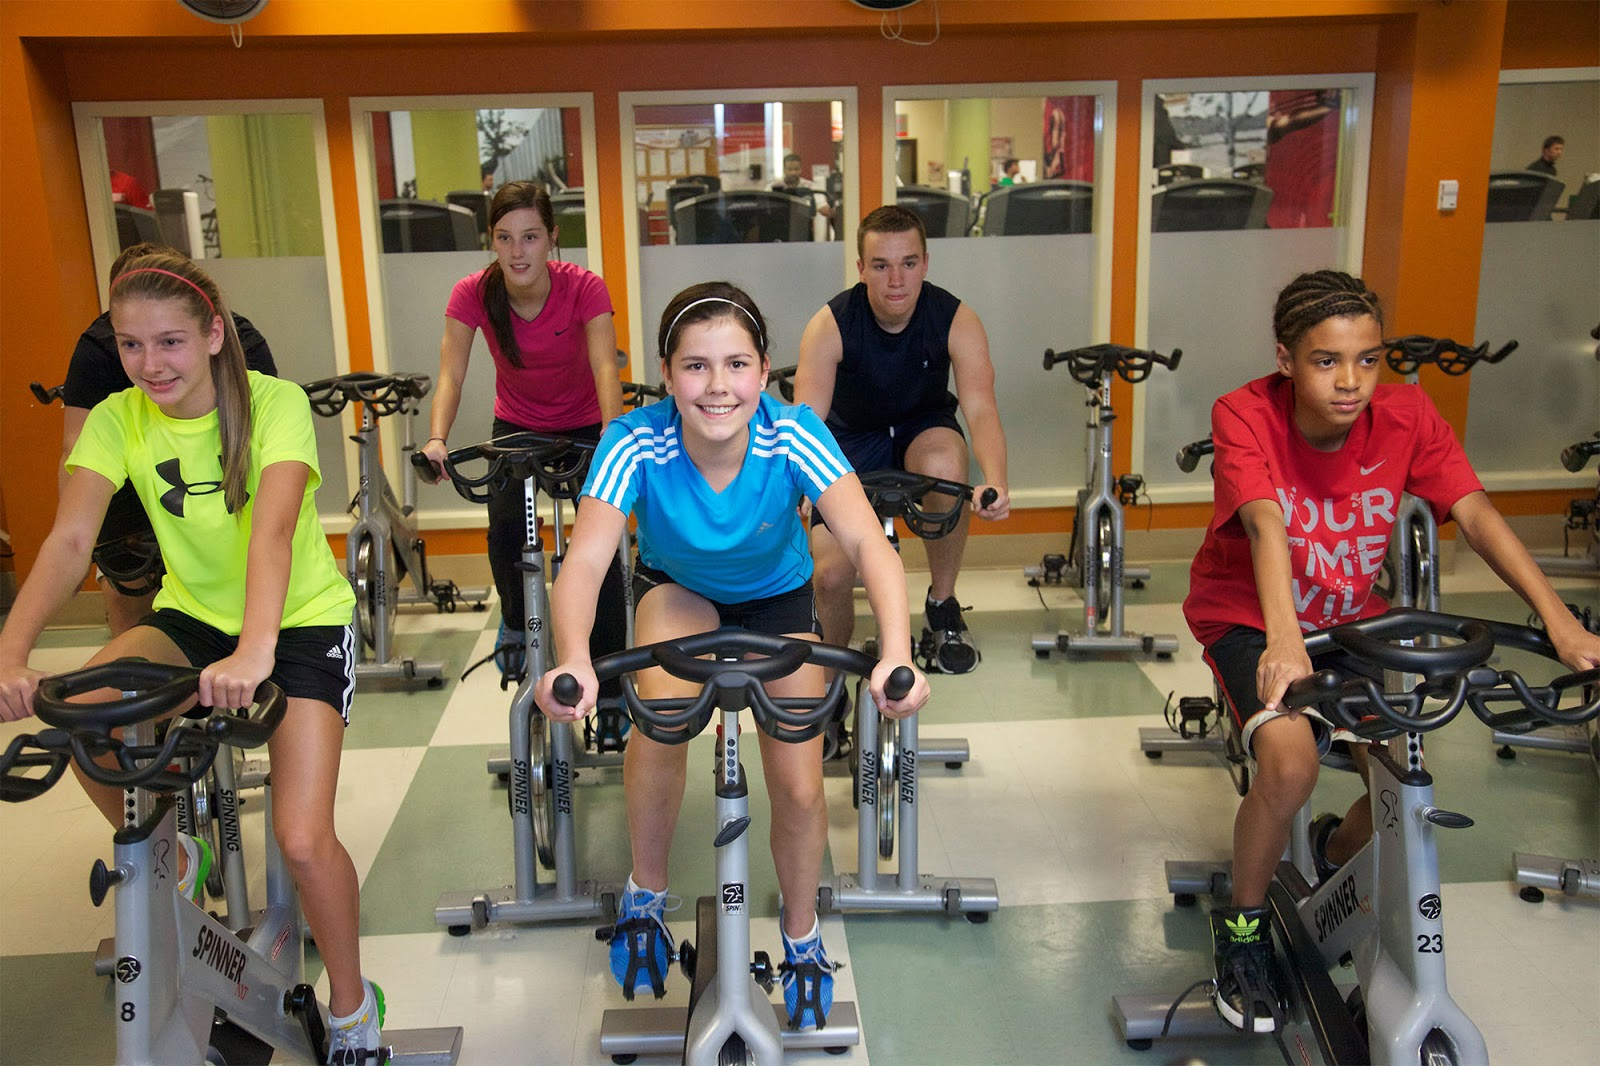 Why exercise is important for teens